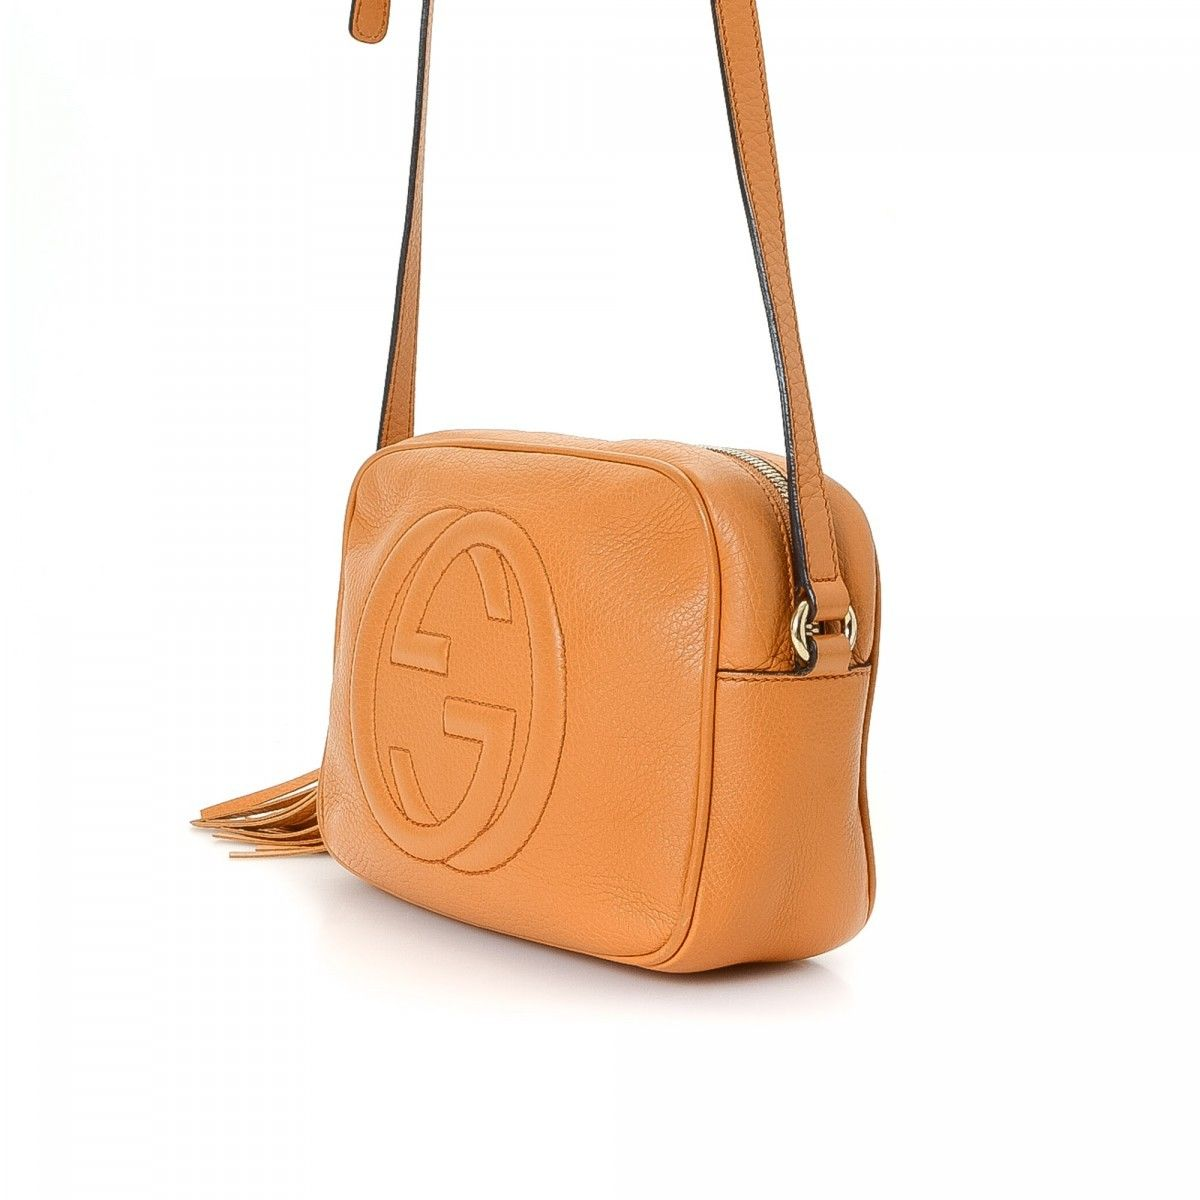 930dc0622ca Gucci Soho Disco Bag. LXRandCo guarantees the authenticity of this vintage  Gucci Disco Bag messenger ...